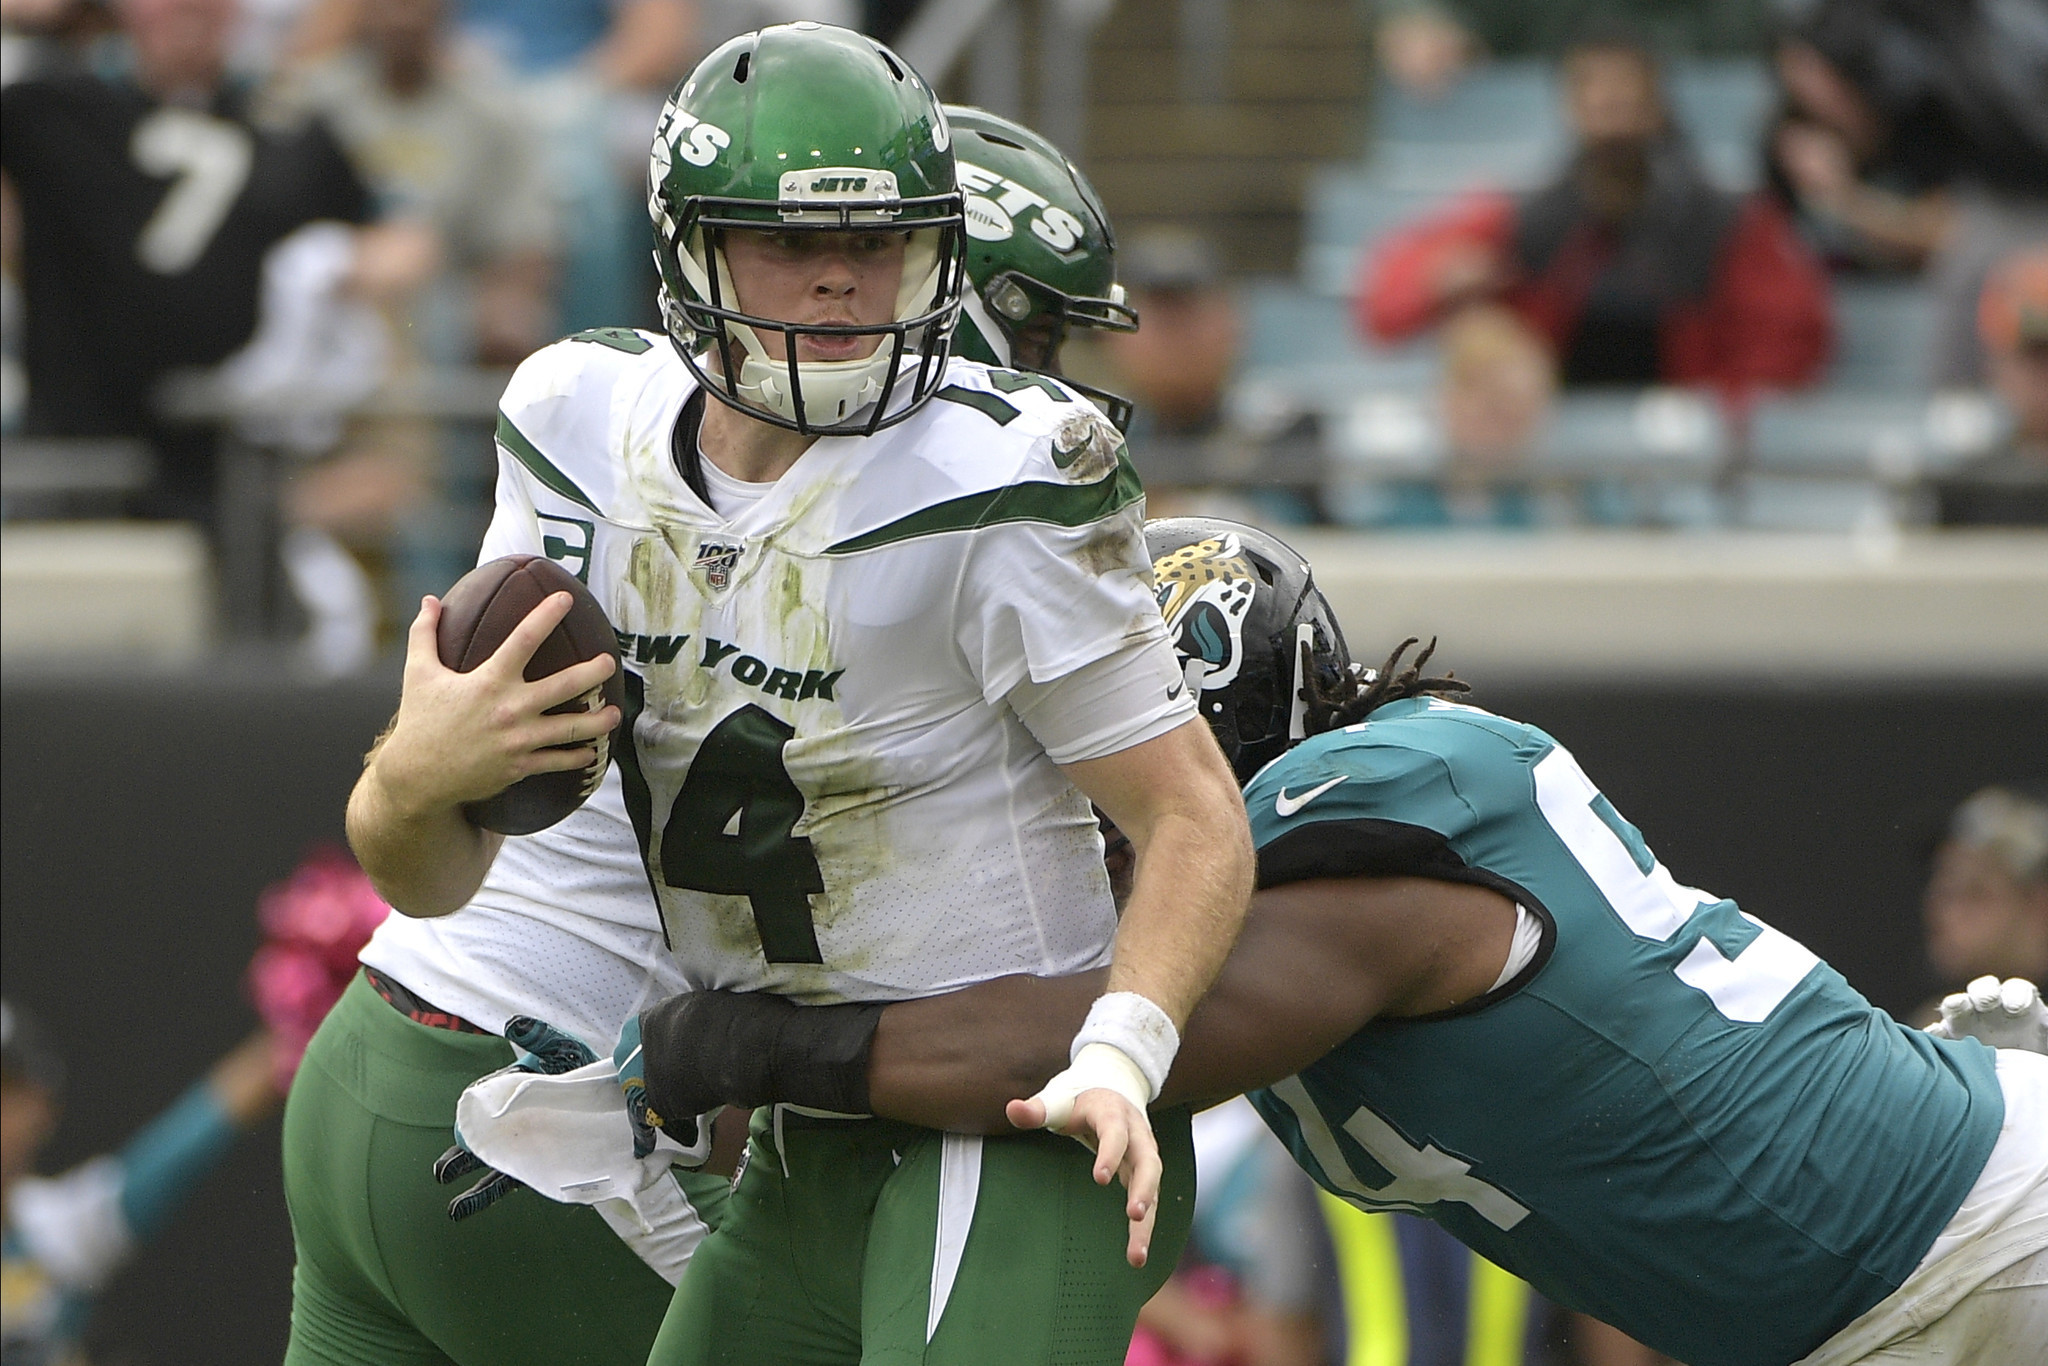 Nothing went right for Jets offense against Jaguars